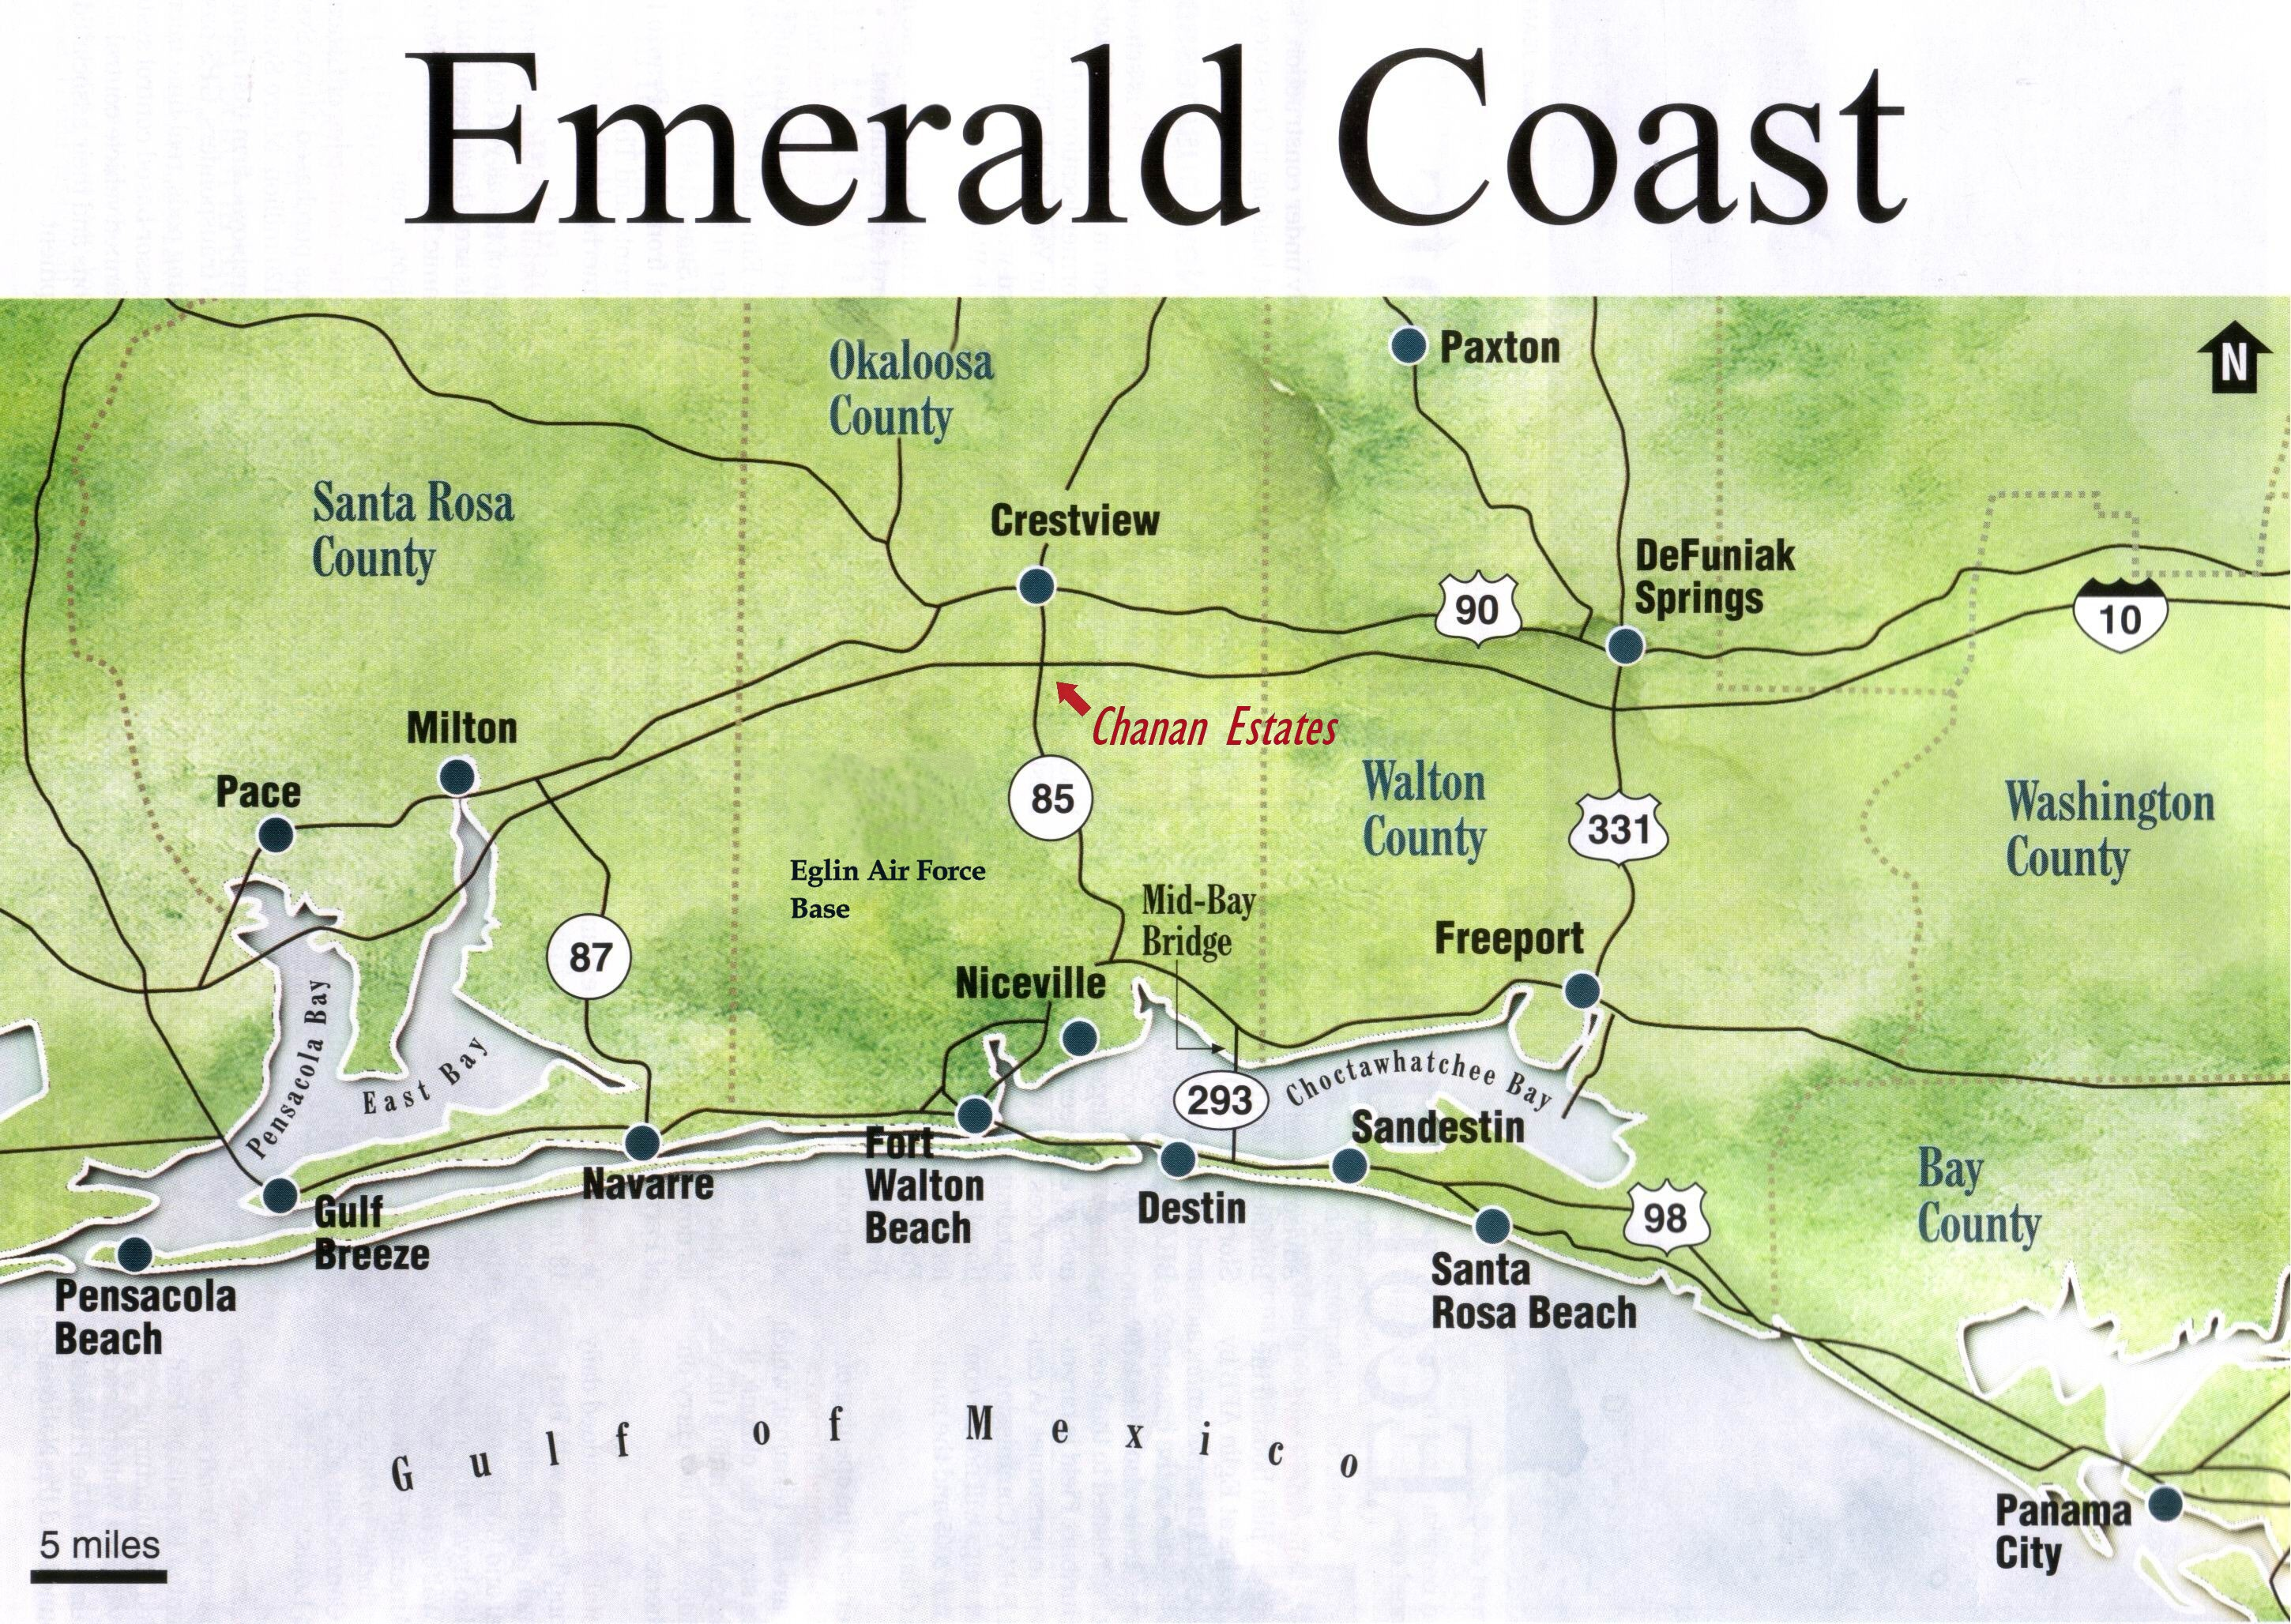 Emerald Coast Florida Map.Emerald Coast Of Florida Map Verkuilenschaaij